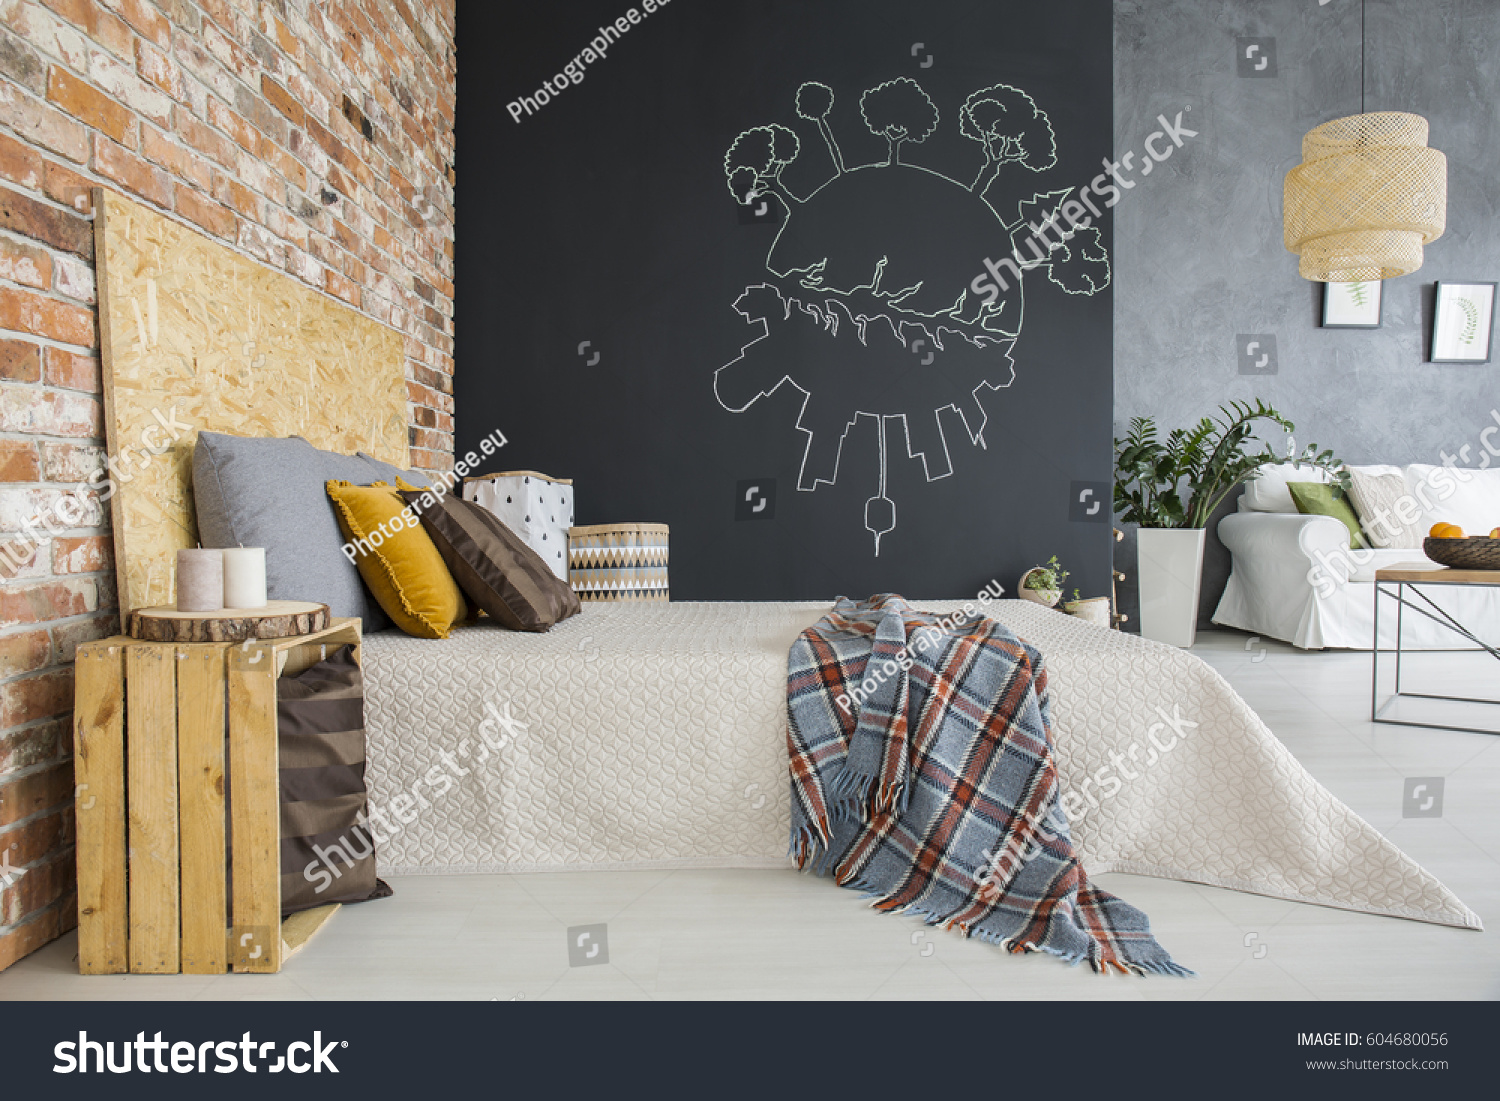 Industrial Style Bedroom Brick Wall Open Stock Photo (Royalty Free)  604680056   Shutterstock